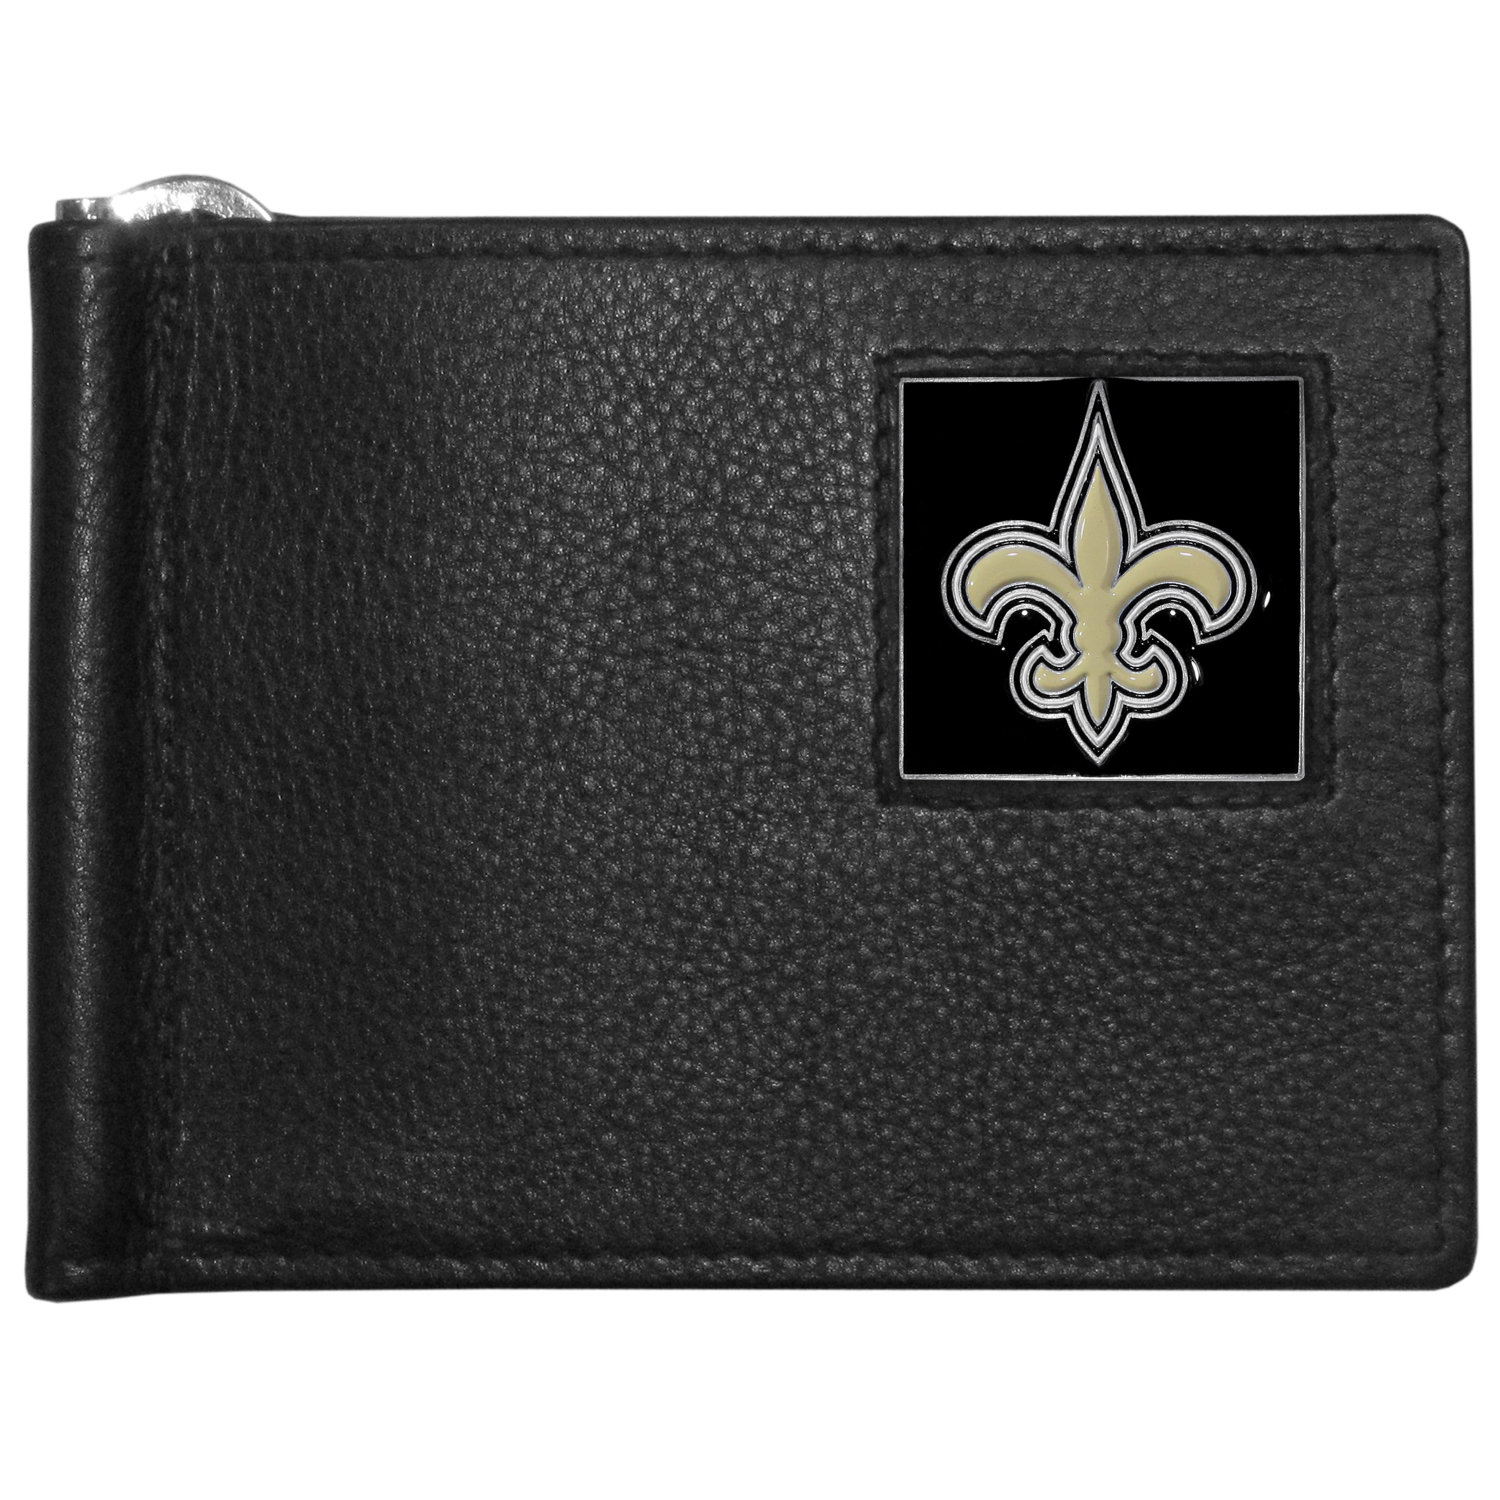 New Orleans Saints Leather Bill Clip Wallet - This cool new style wallet features an inner, metal bill clip that lips up for easy access. The super slim wallet holds tons of stuff with ample pockets, credit card slots & windowed ID slot.  The wallet is made of genuine fine grain leather and it finished with a metal New Orleans Saints emblem. The wallet is shipped in gift box packaging.